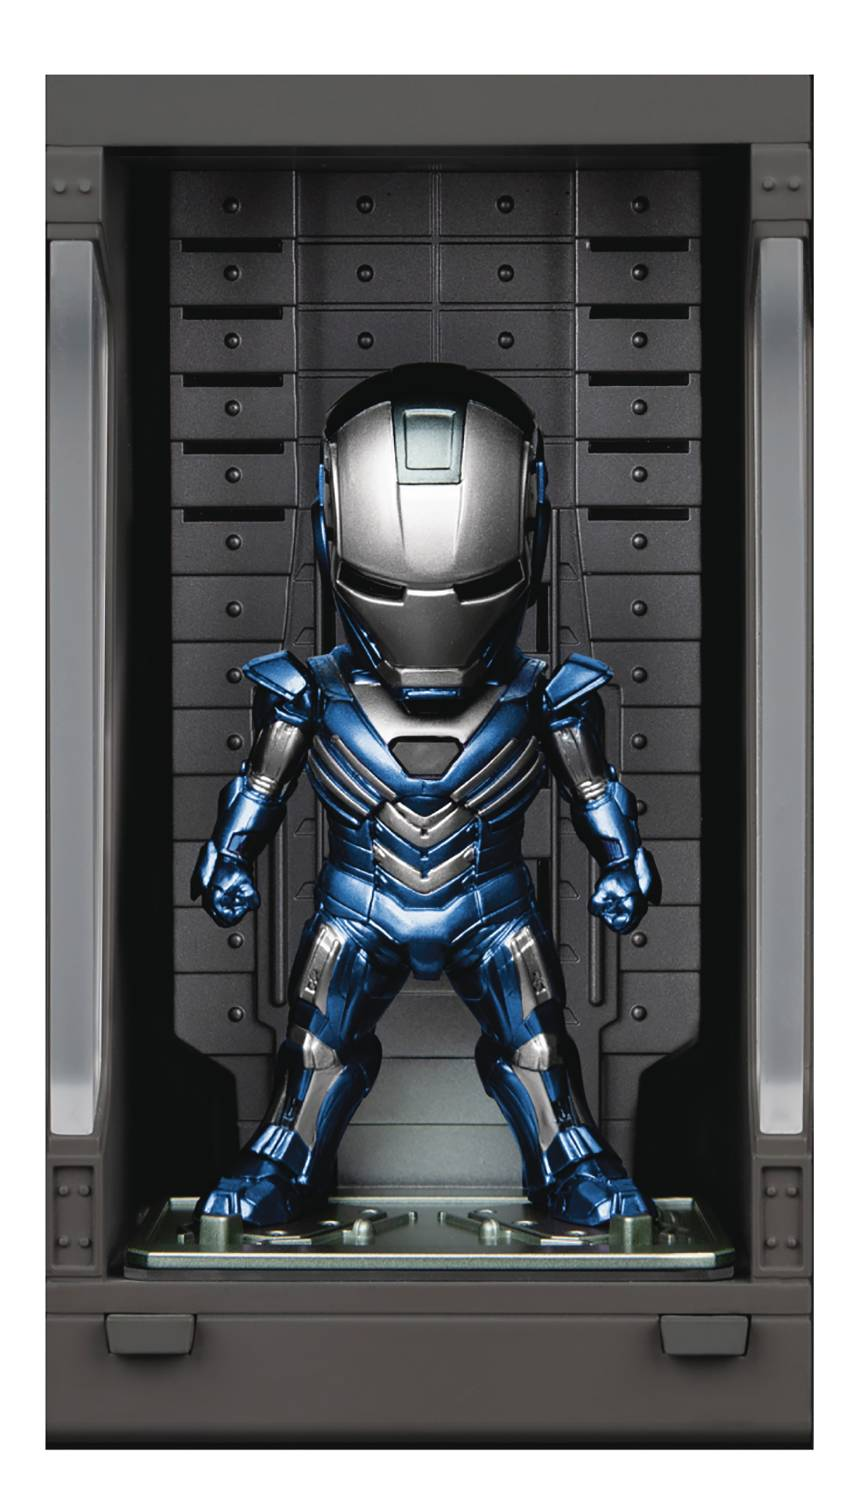 IRON MAN 3 MEA-022 IRON MAN MK XXX W/ HALL OF ARMOR FIG